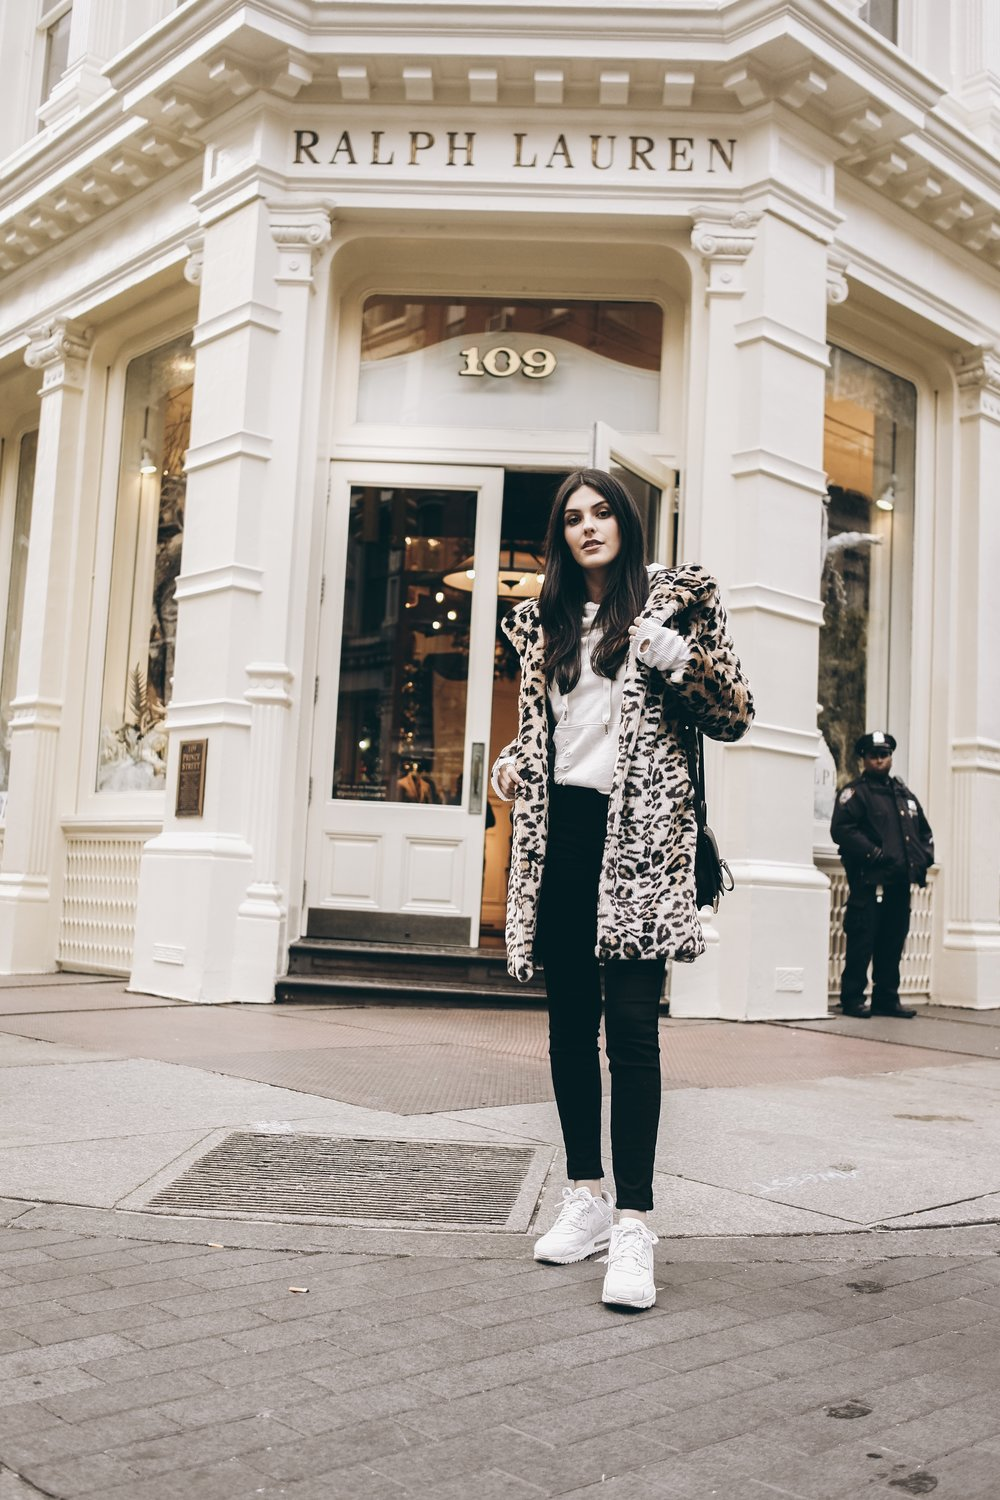 Leopard faux fur coat, nike air max, soho street | 3 Ways to Save Money While Traveling